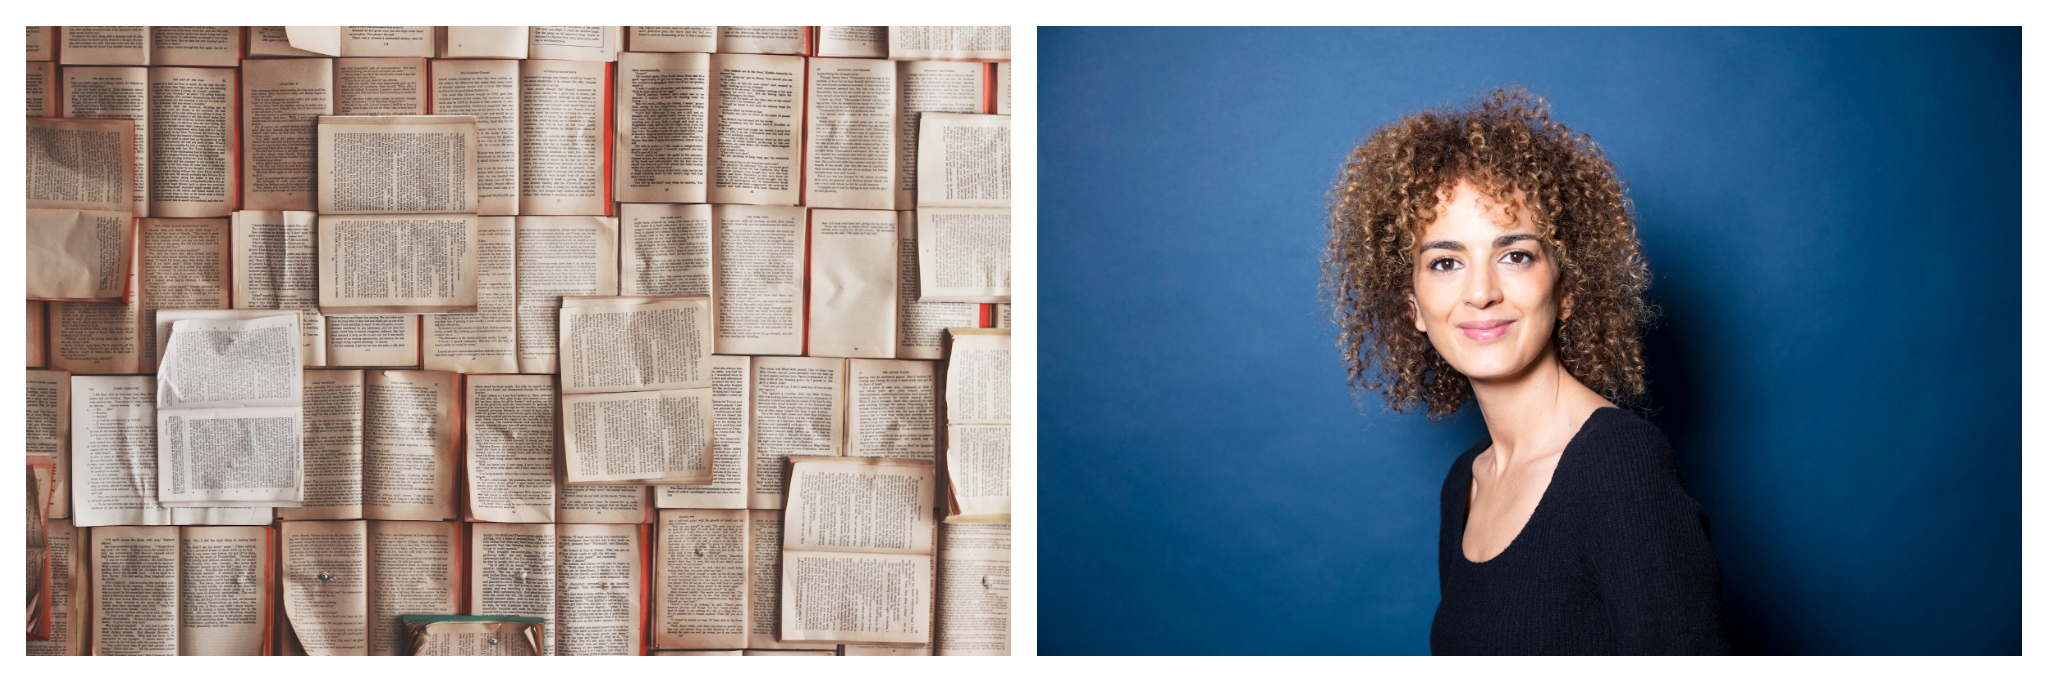 Left: Numerous books are opened and laid atop one another, Right: Leila Slimani stands in a long black sleeve shirt in front of a blue background